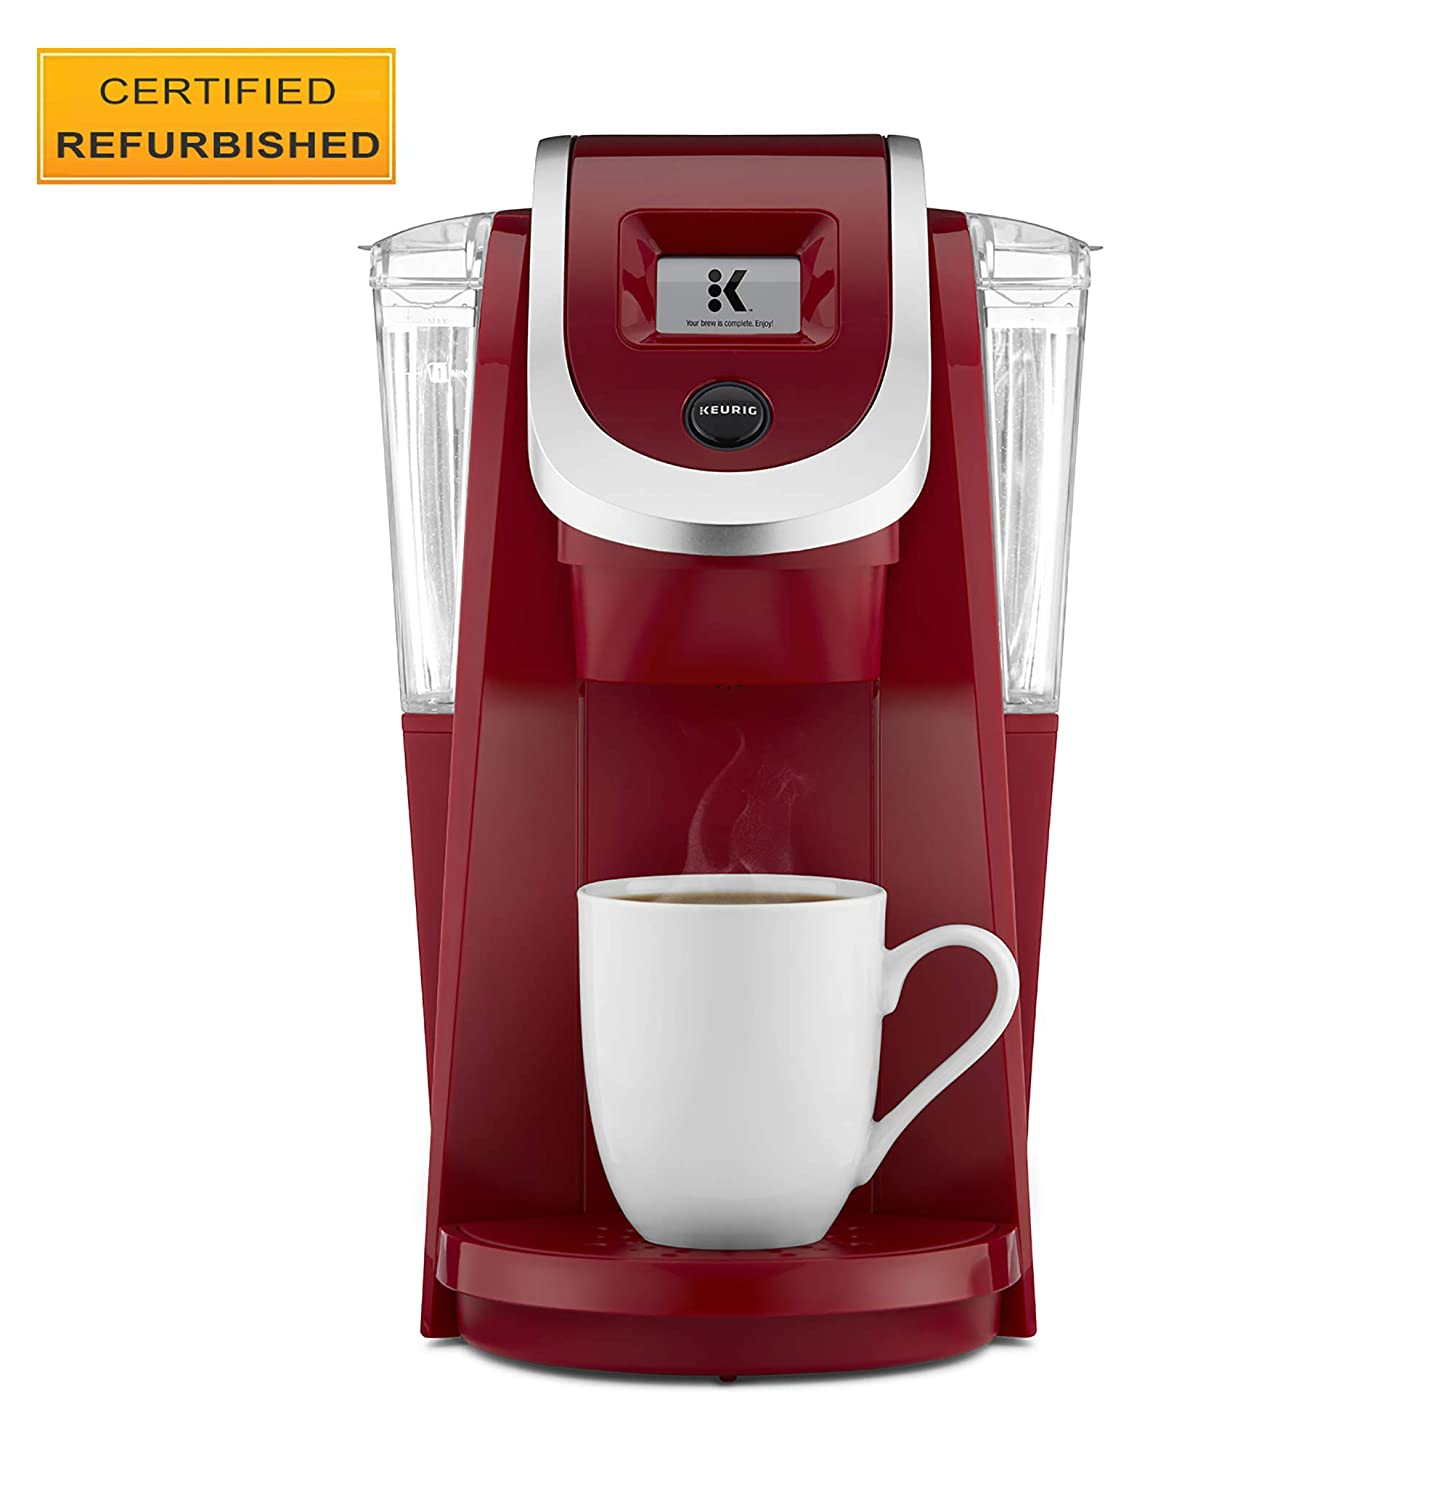 Keurig K200 Certified Refurbished Coffee Maker, Single Serve K-Cup Pod Coffee Brewer, With Strength Control, Imperial Red